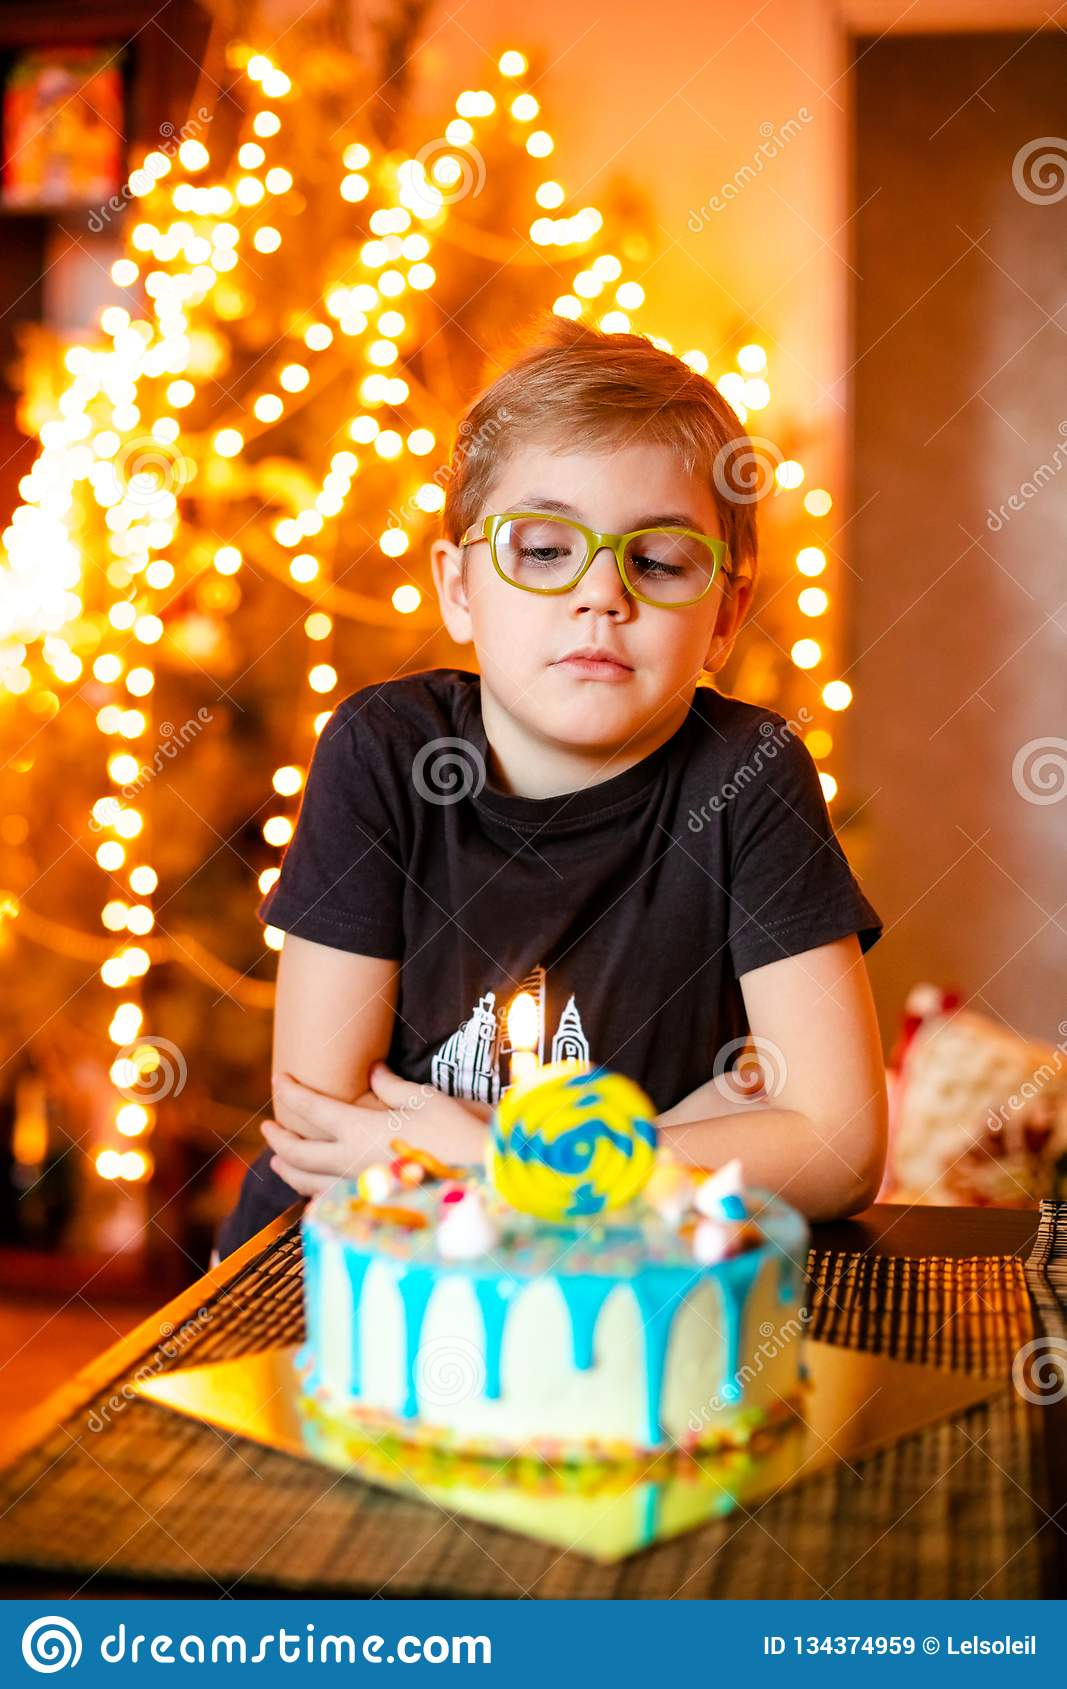 The 30 Best Birthday Cakes For Boys My Cake Recipes